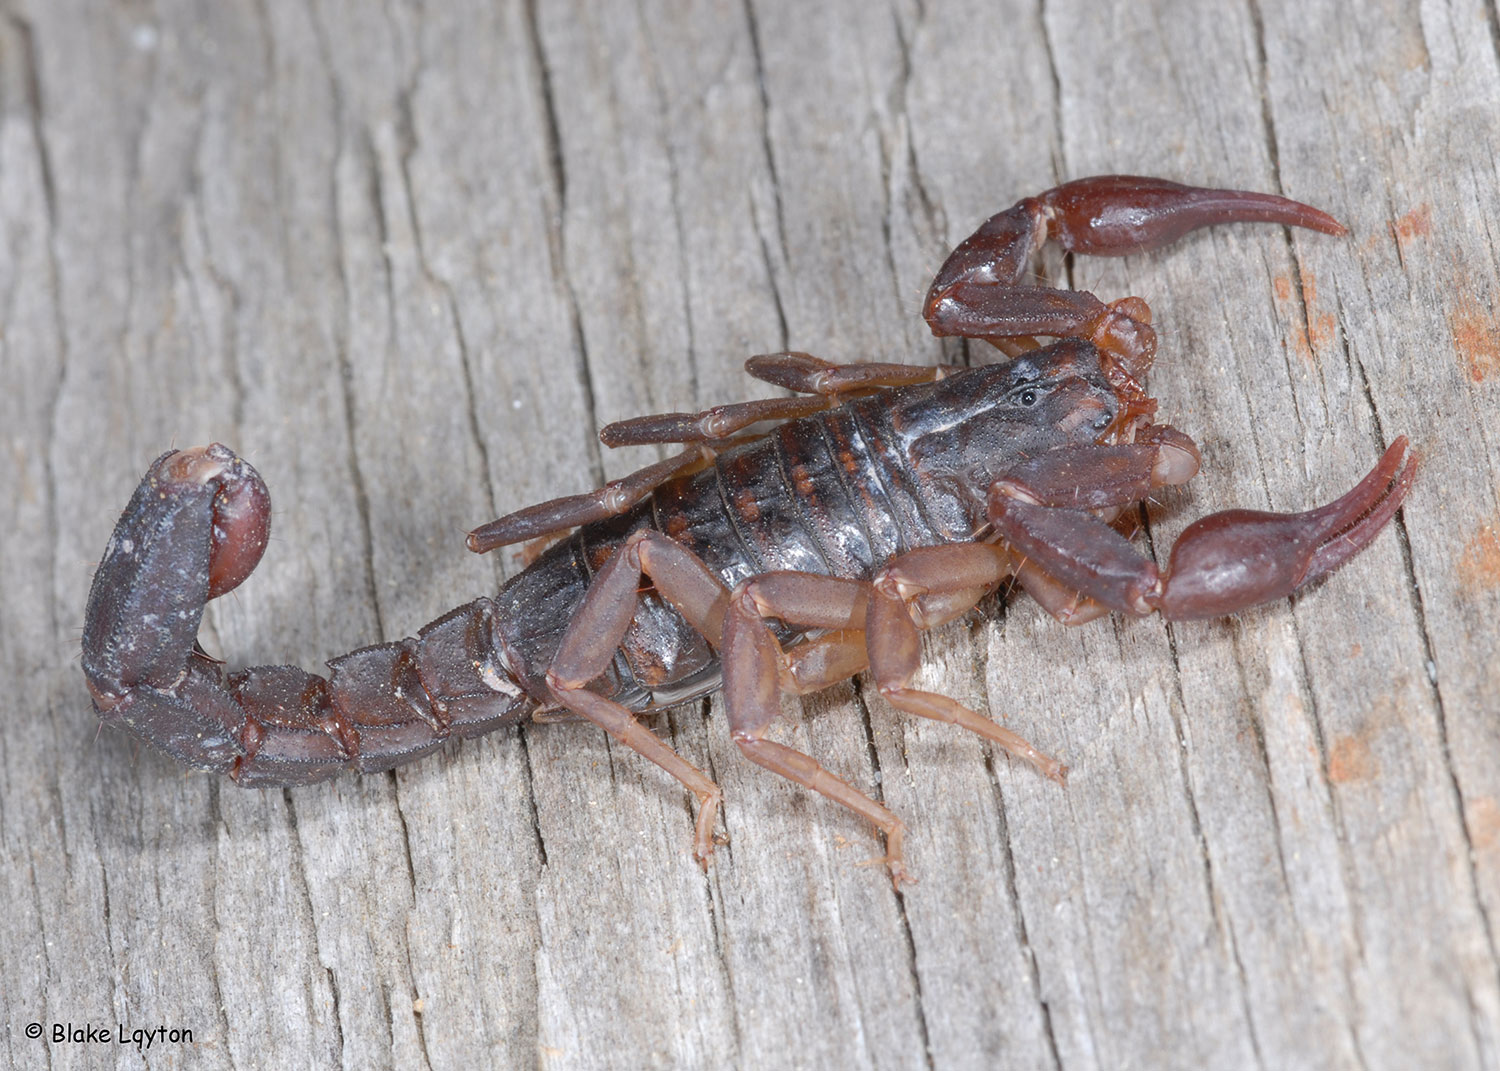 A Southern Devil Scorpion on a plank of wood.